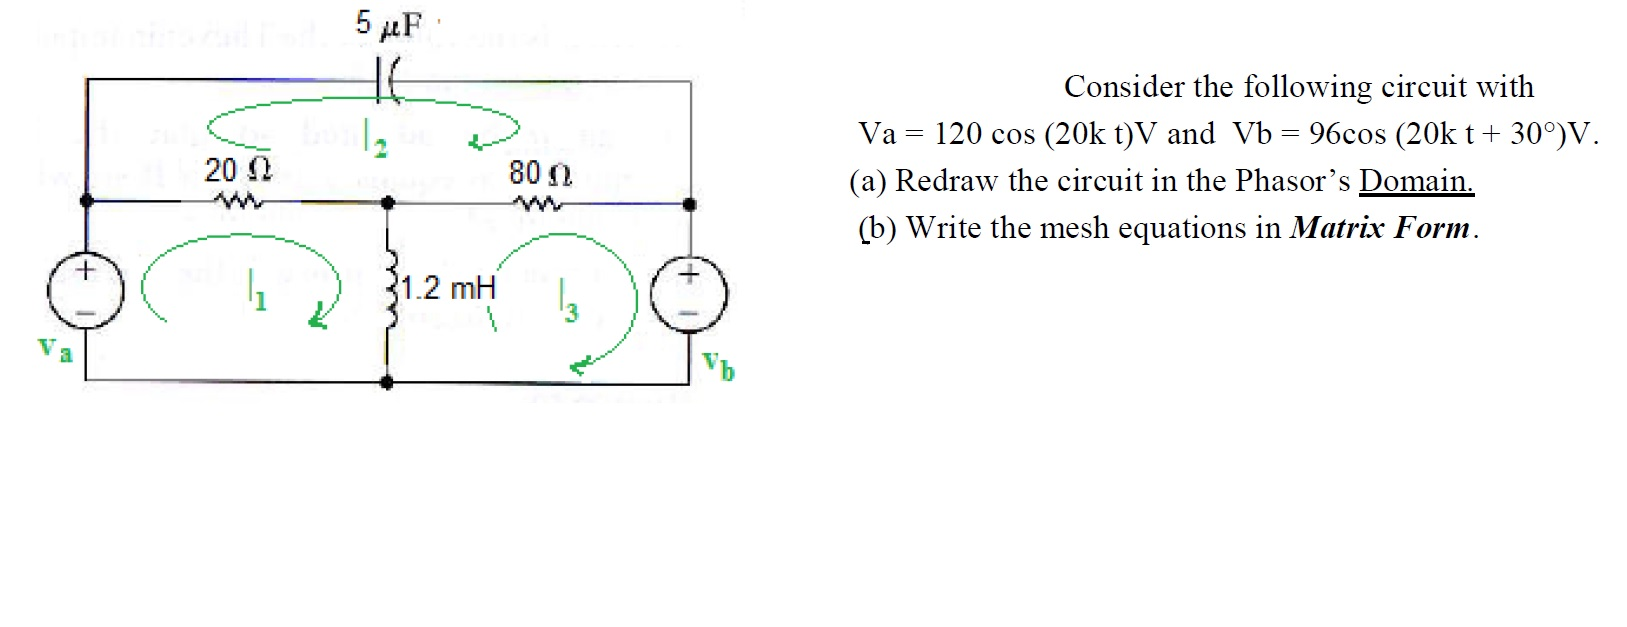 Consider the following circuit with Va = 120 cos (